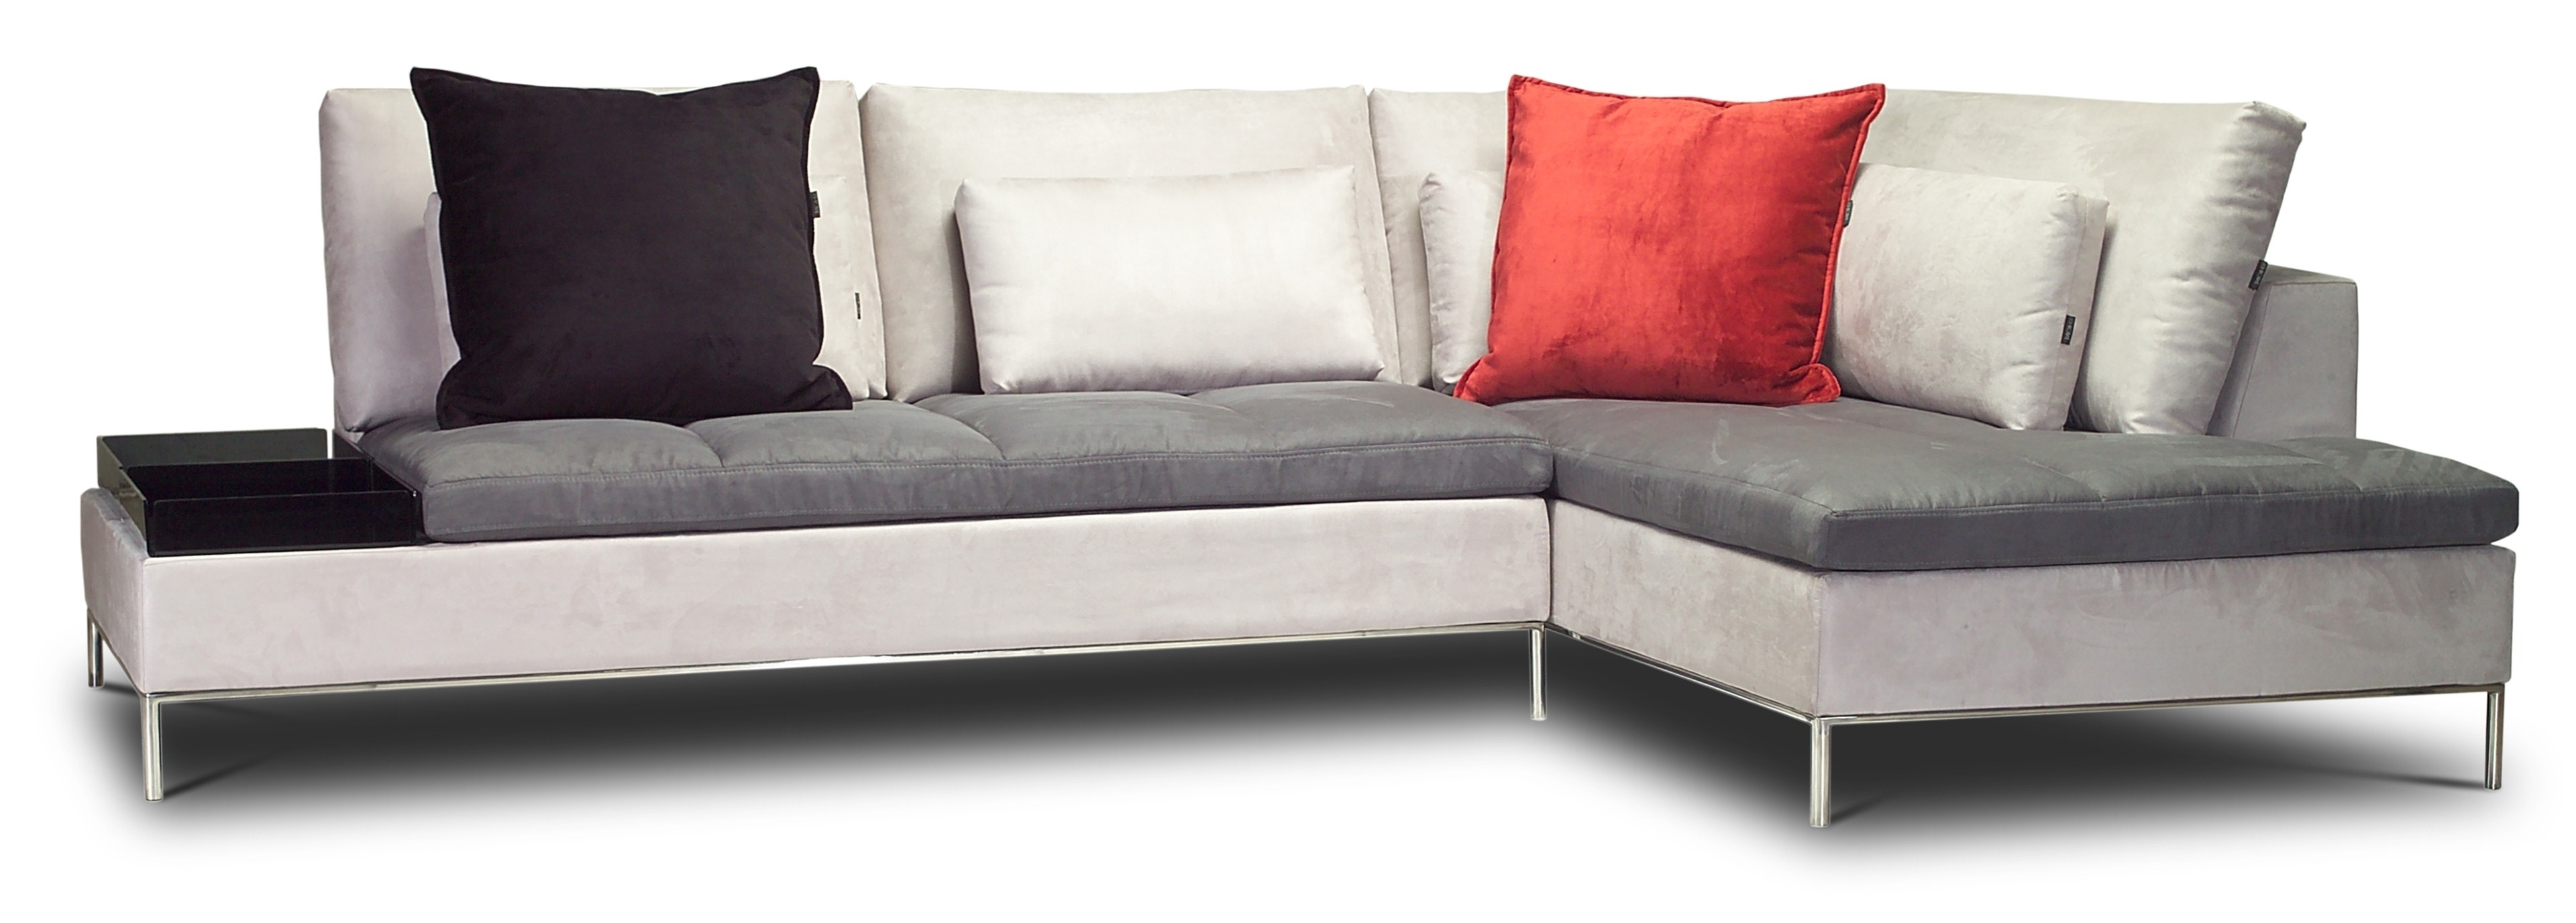 Jackknife Sectional Sofa Bed • Sofa Bed Regarding Most Recently Released Dallas Texas Sectional Sofas (View 8 of 20)